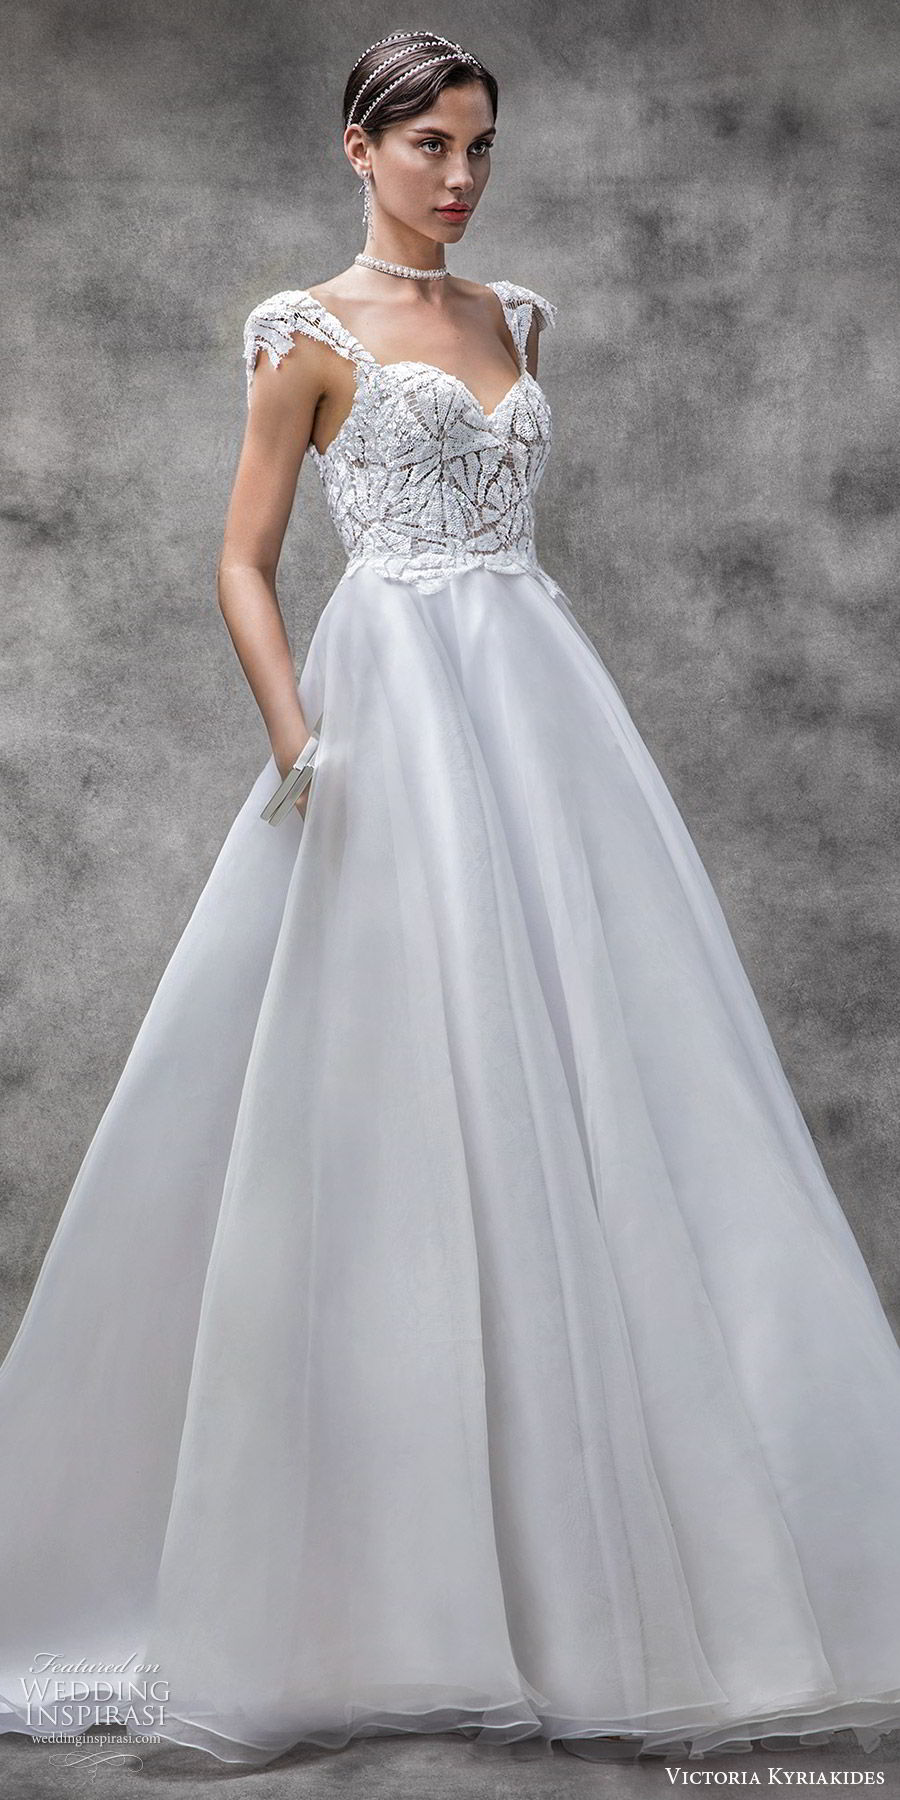 victoria kyriakides spring 2020 bridal cap sleeves sweetheart embellished bodice a line ball gown wedding dress (16) elegant romantic modern mv